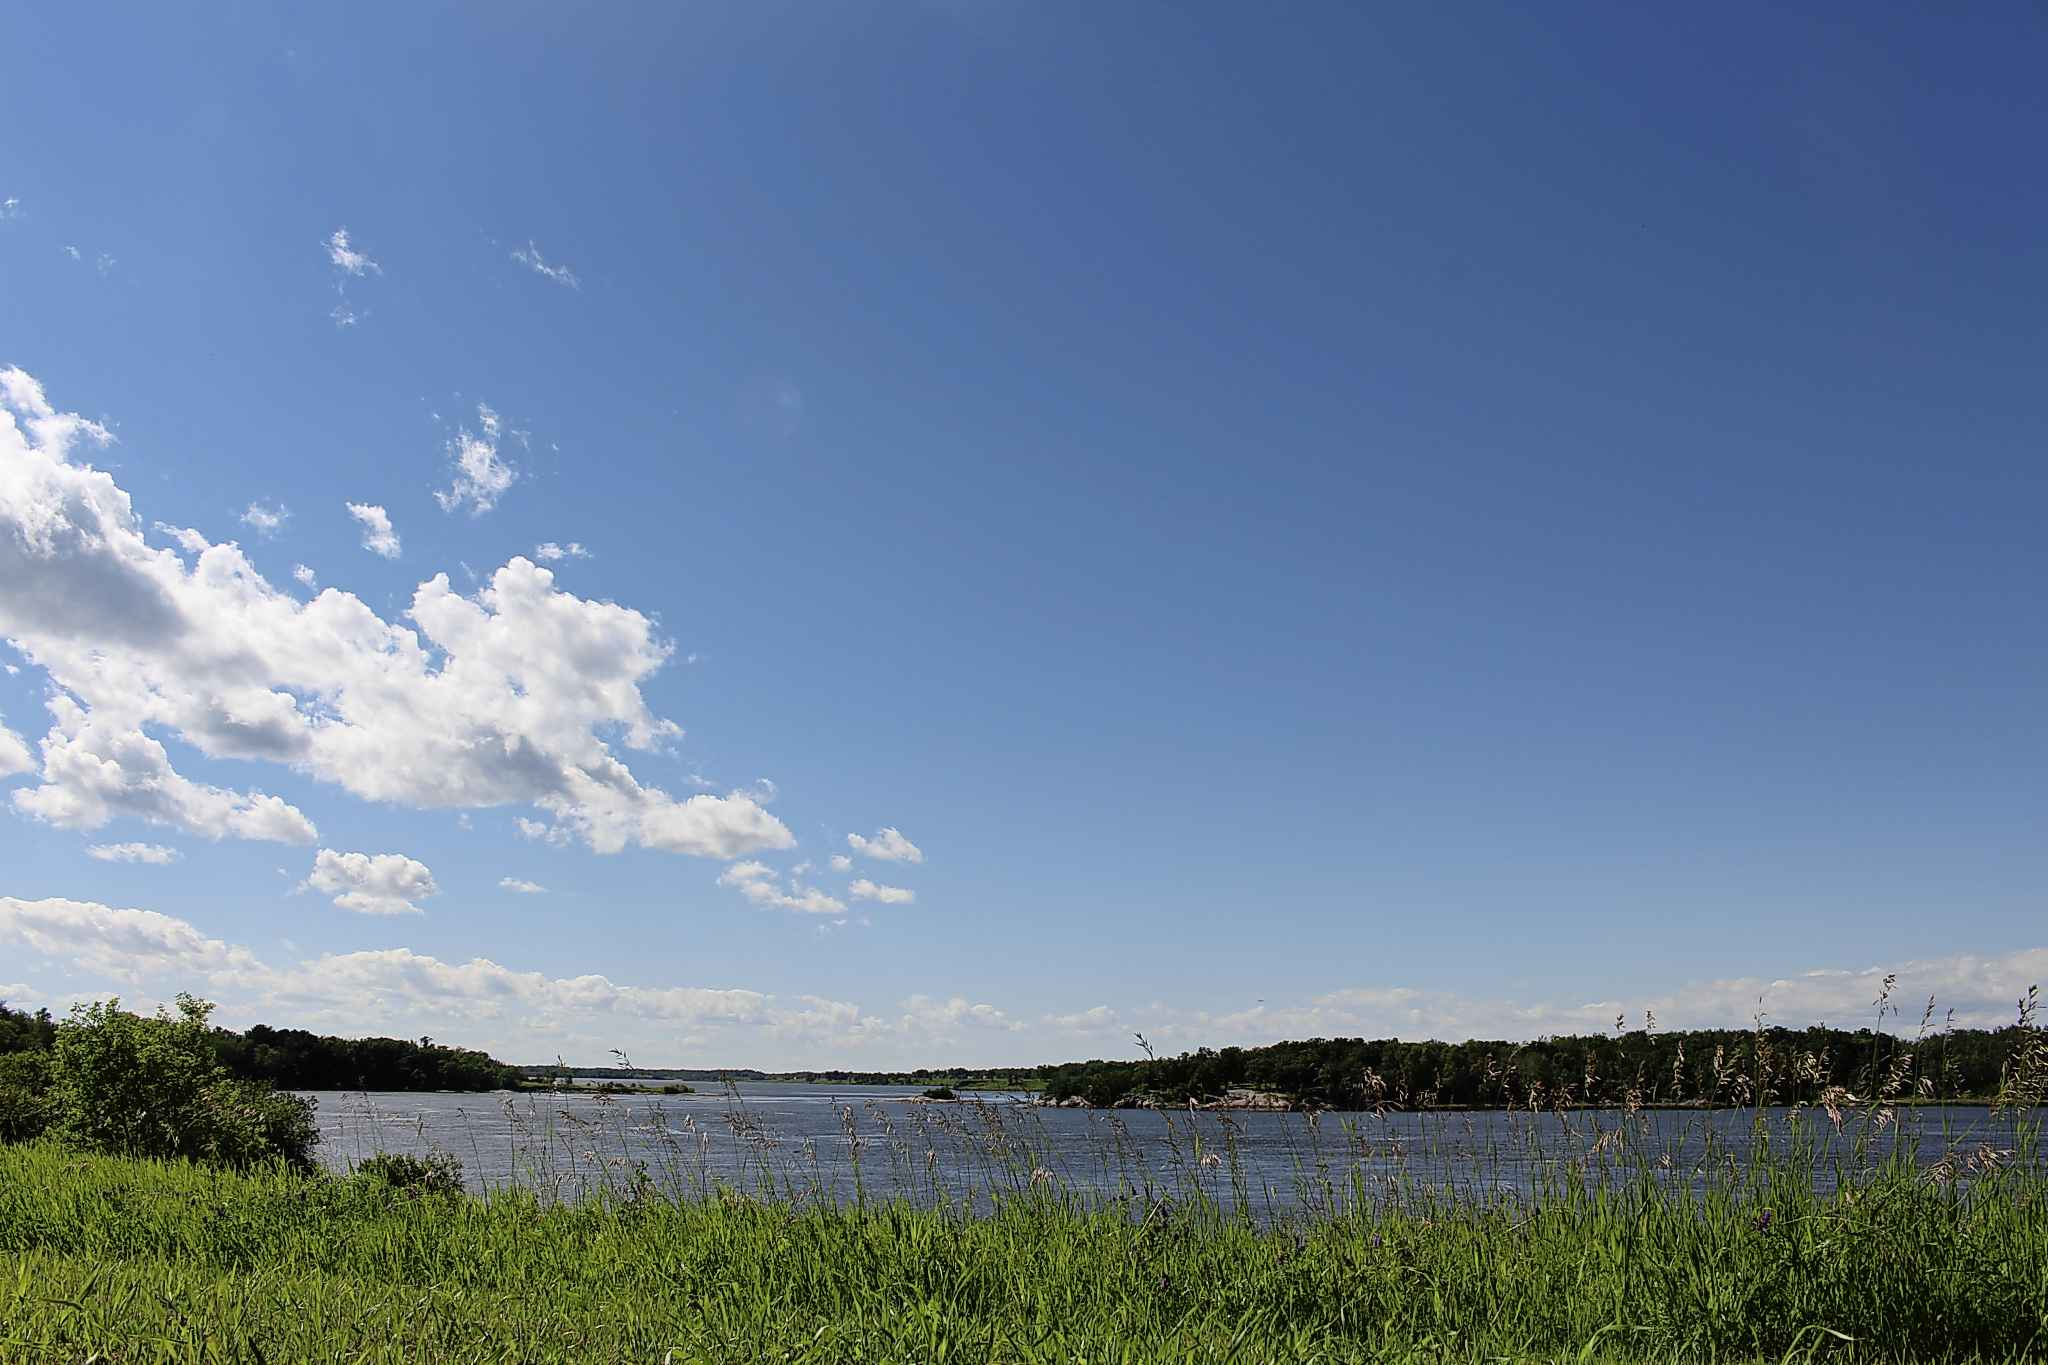 Powerview-Pine Falls is situated on the south bank of the Winnipeg River. The scenic location belies the community's troubles. (Ryan Thorpe / Winnipeg Free Press)